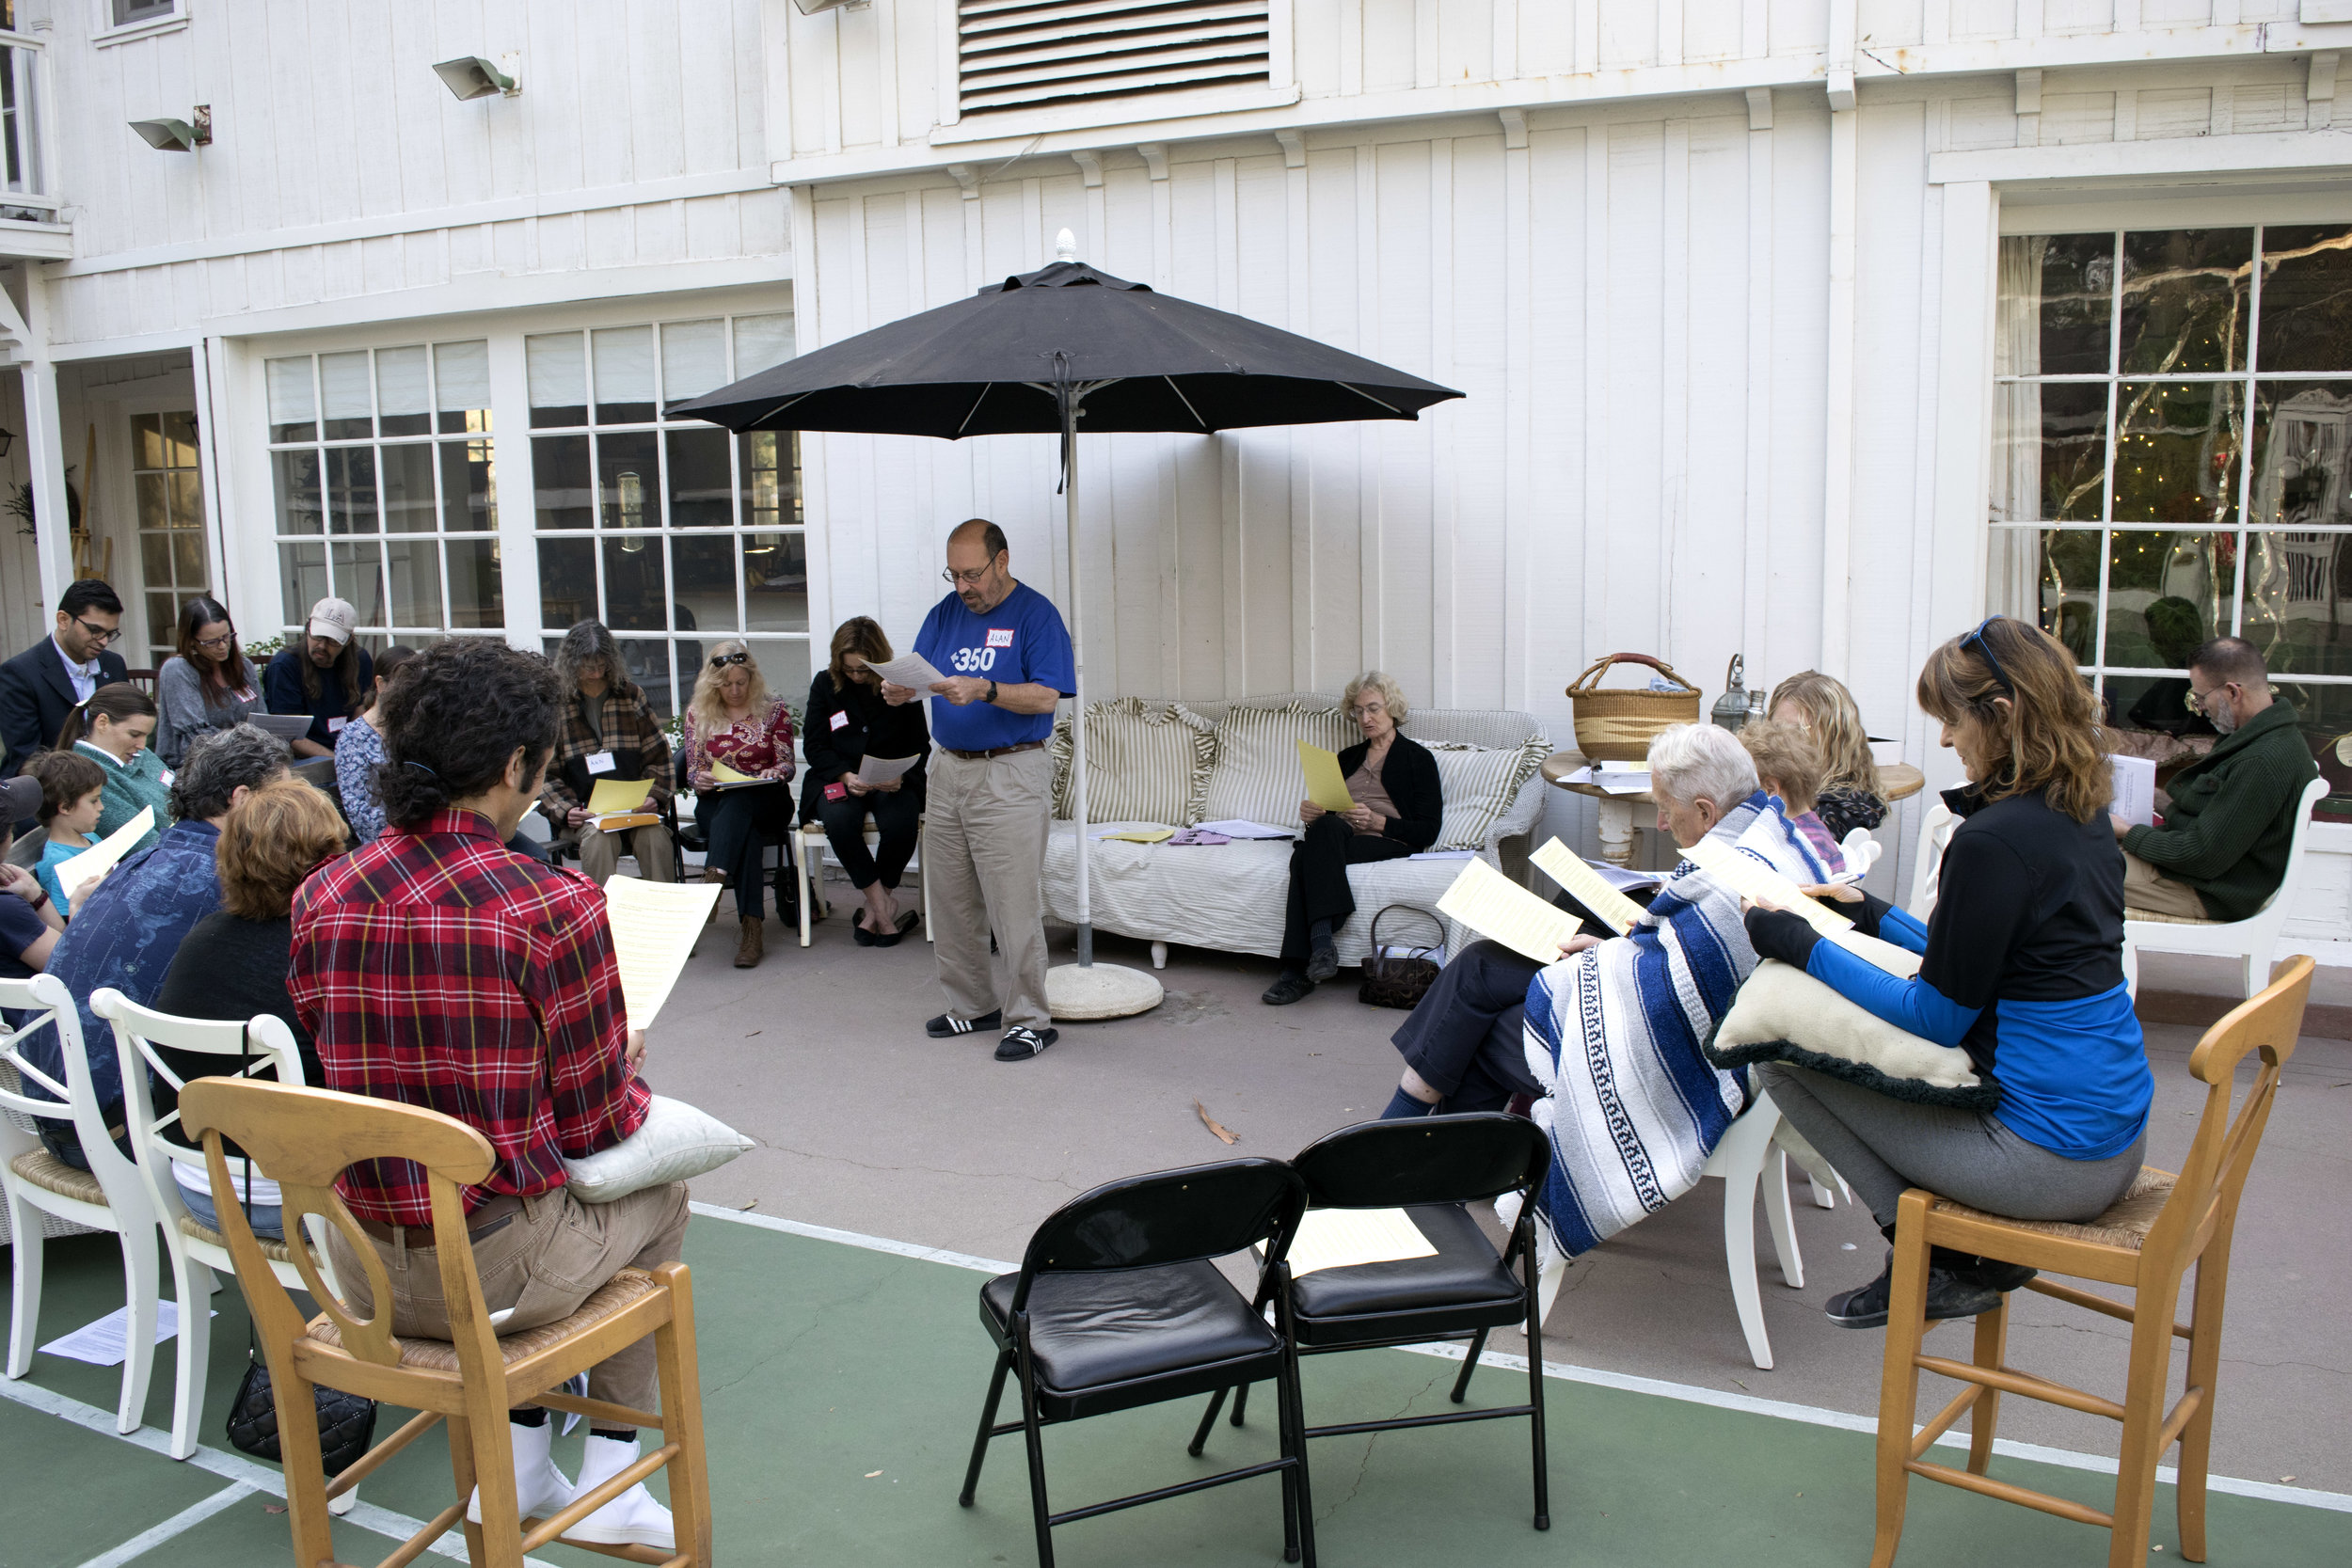 Alan Weiner convenes the December meeting of our local 350 chapter at the Valley Art Workshop. (valleyartworkshop.com). We discussed the goals of stopping fossil fuel development and organizing around local efforts (such as DivestLA, plugging the Aliso Canyon Gas Fields, and Climate Hawks vote).  January starts a major new campaign!    You can join the group by contacting Alan Weiner at Mighty30North@gmail.com.